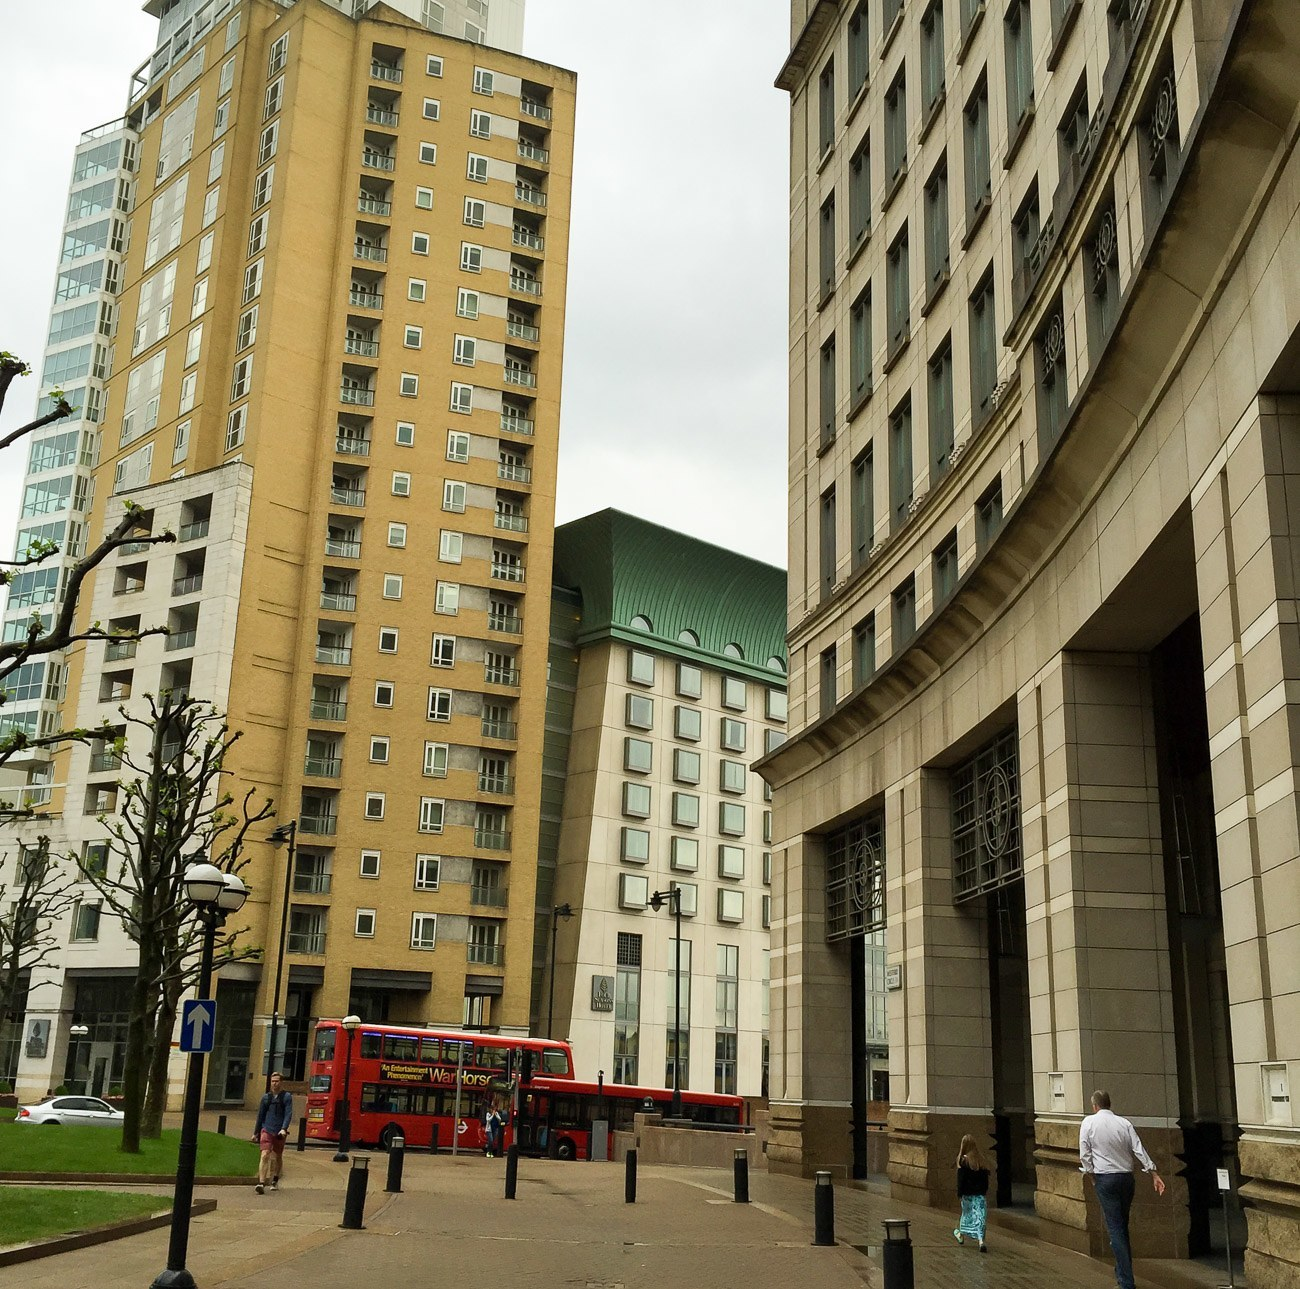 Four Seasons Hotel London at Canary Wharf has many conveniences within walking distance.